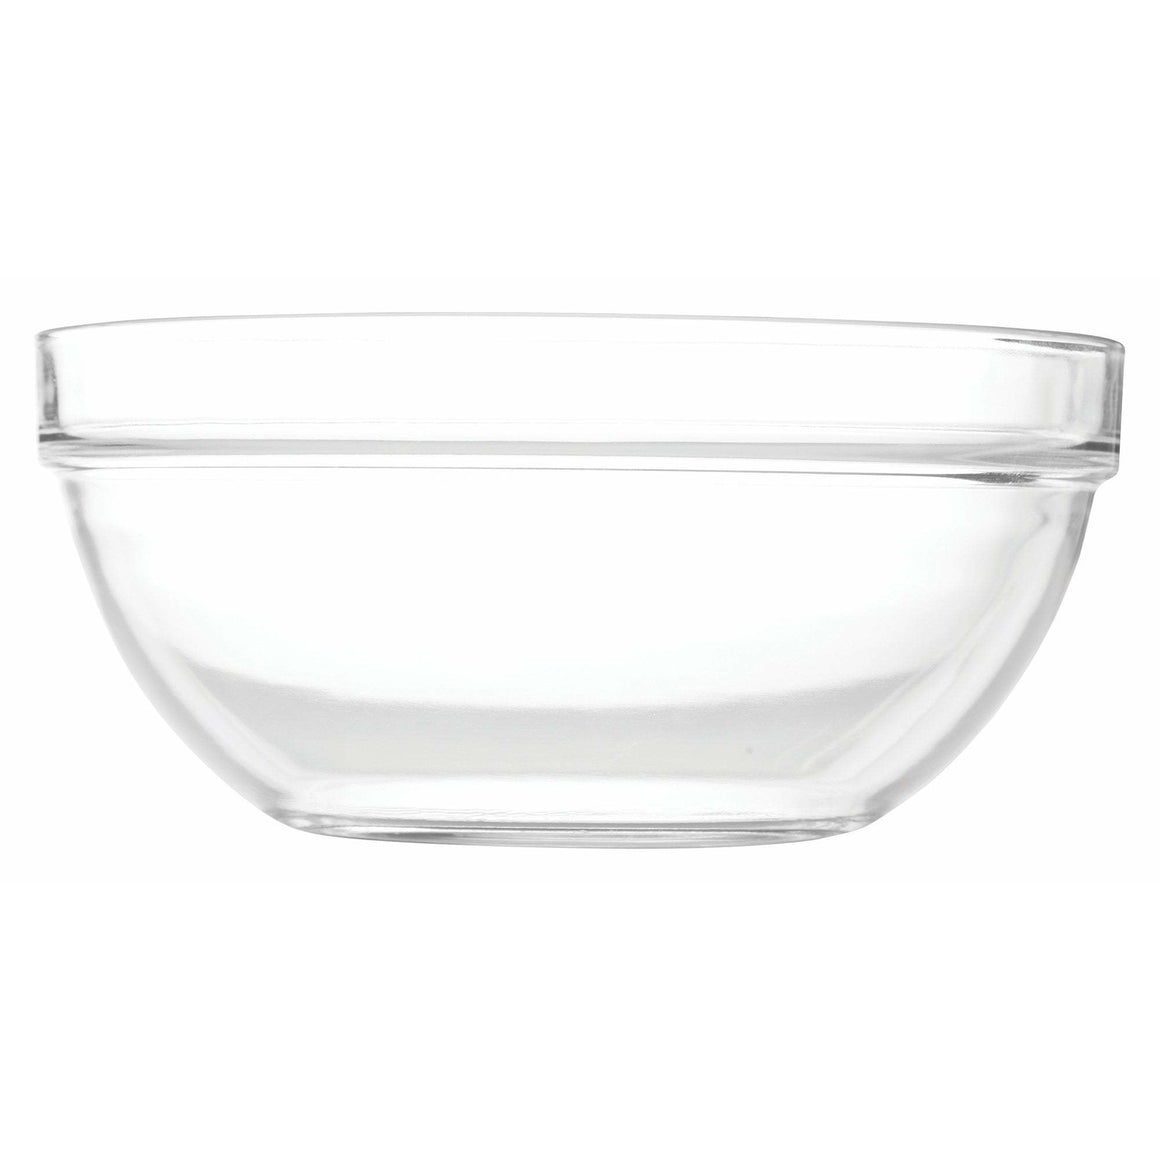 Winco - TDSF-4-GLS - Glass Bowl for TDSF-4 - Buffet Service